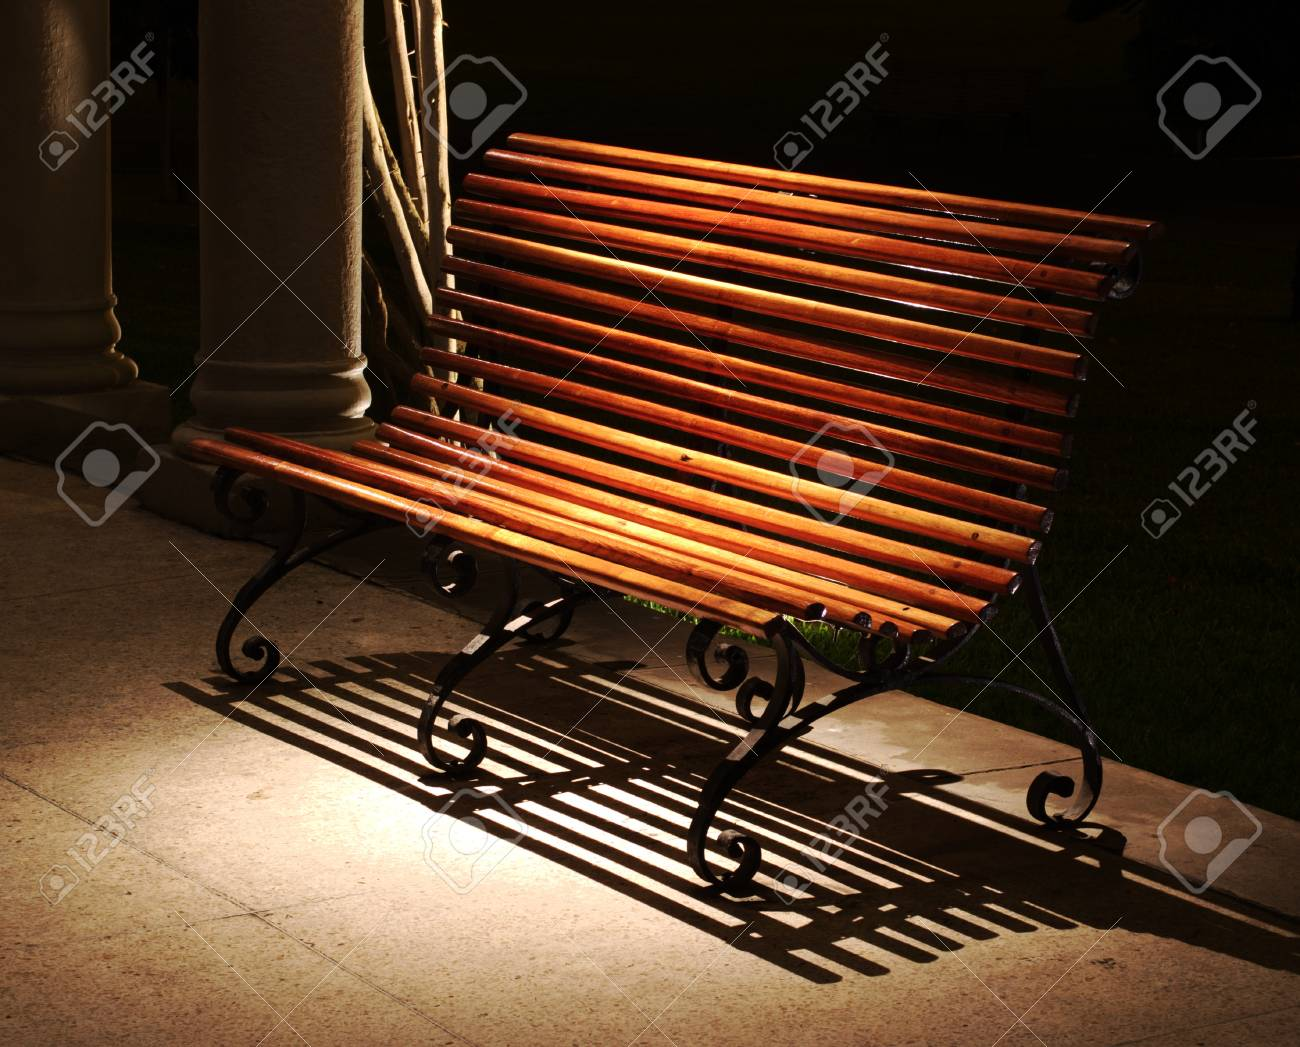 A wooden Bench standing in a Spot Light at Night Stock Photo - 8838340